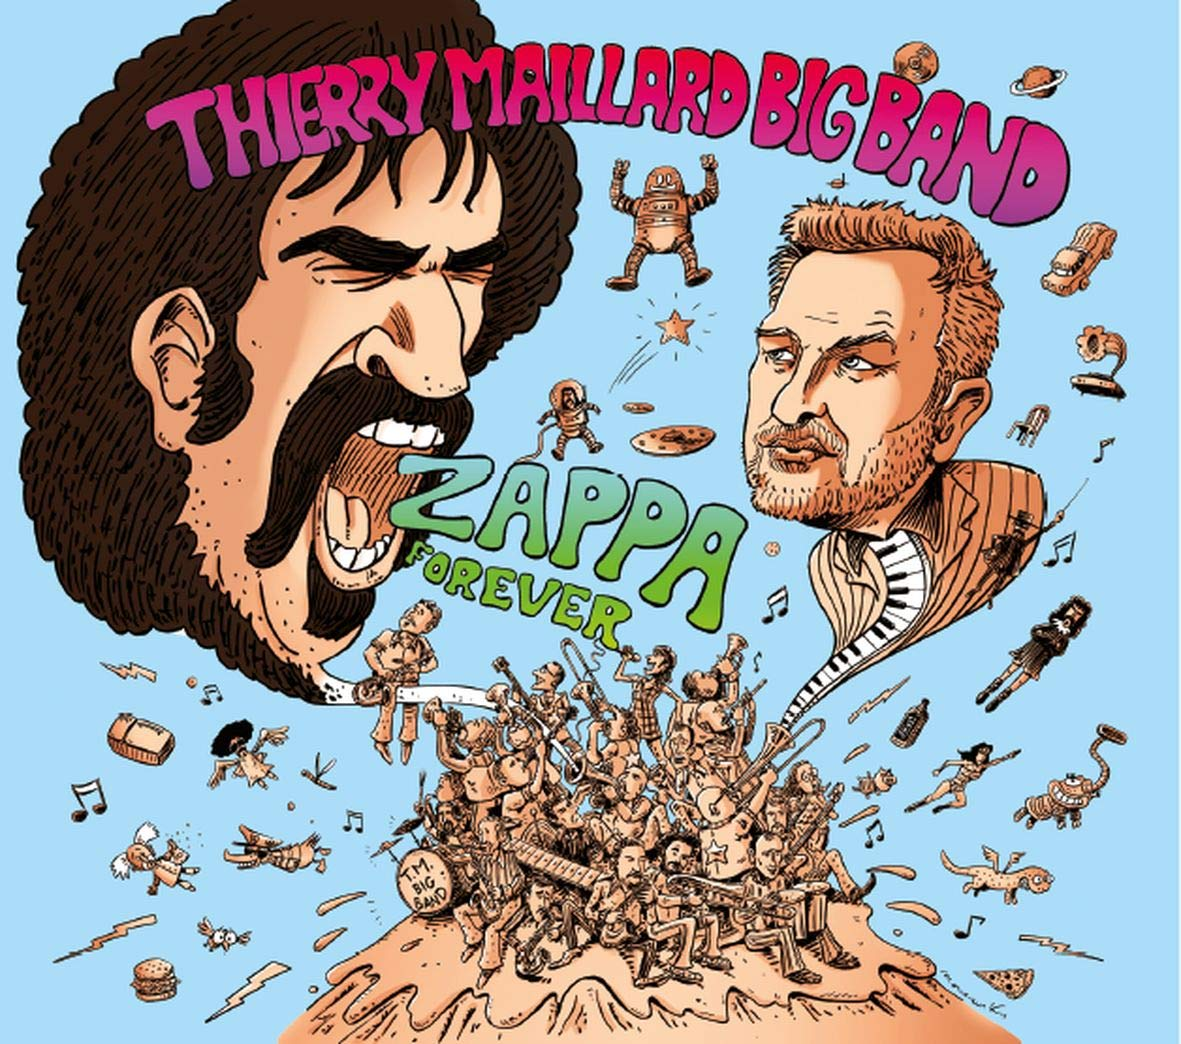 THIERRY MAILLARD - Thierry Maillard Big Band : Zappa Forever cover